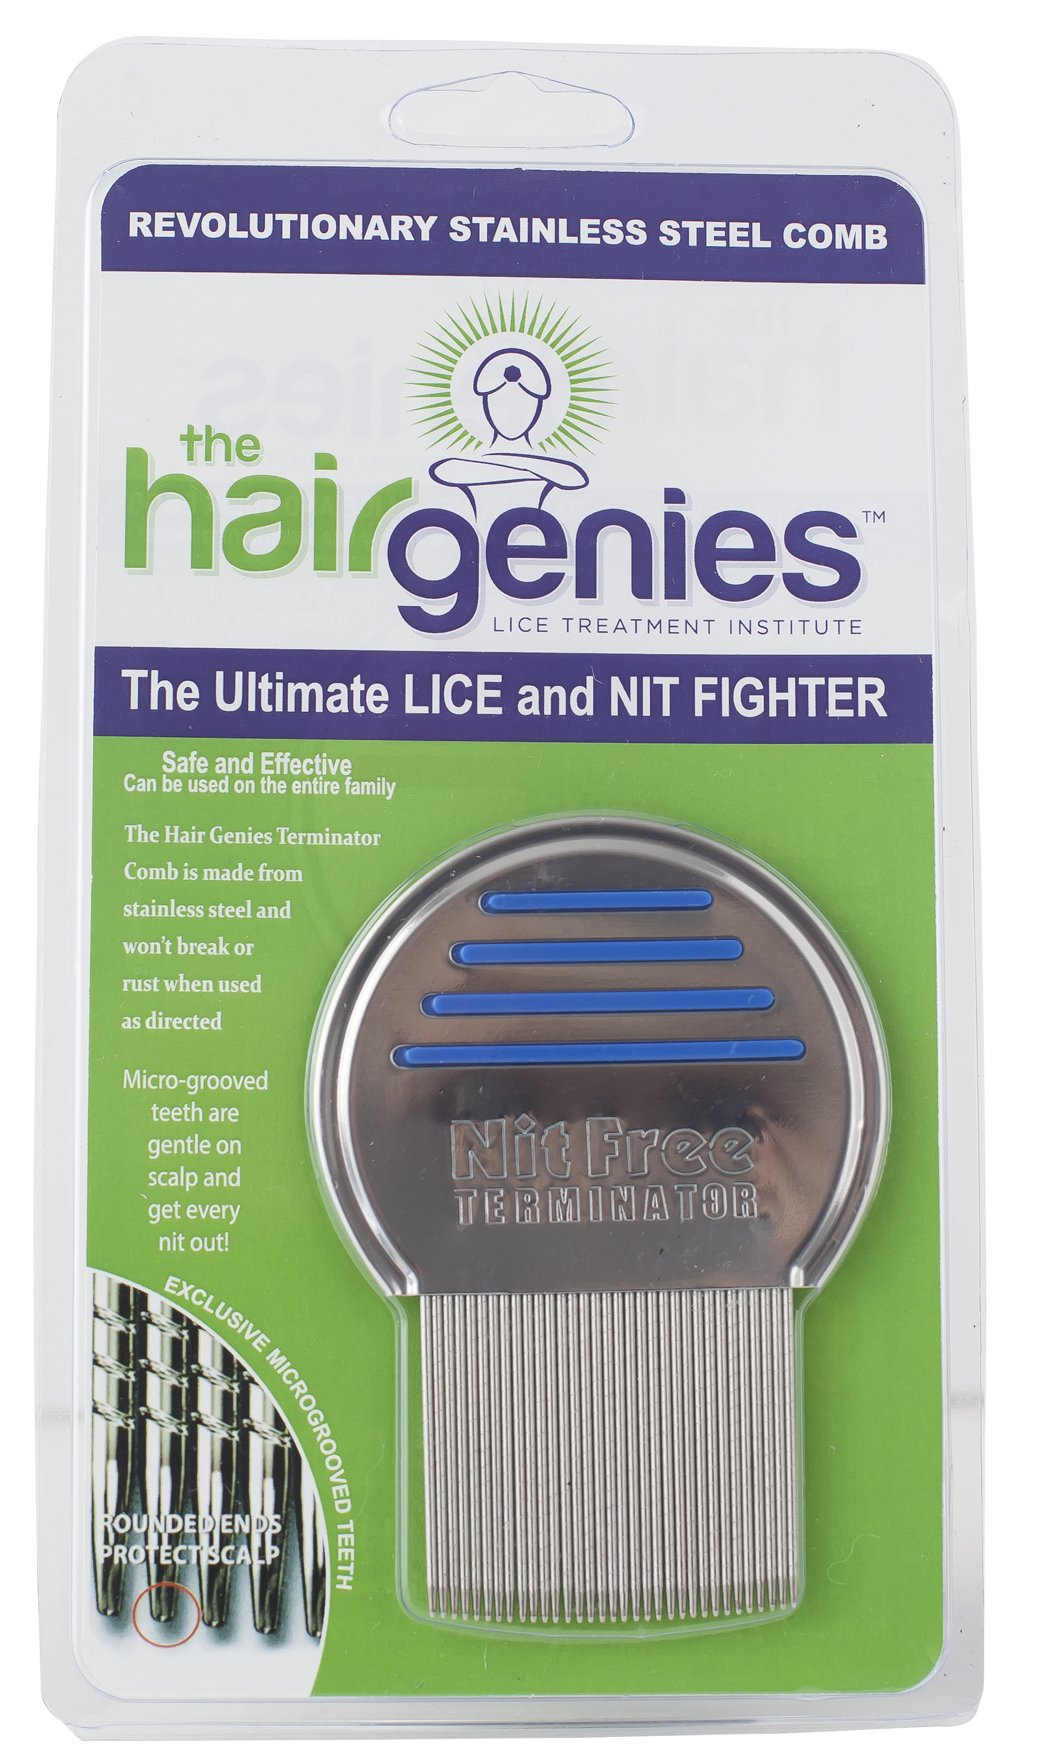 Hair Genies Lice Prevention Terminator Comb, The Best Lice Comb, Head Lice Comb, Lice Treatment Comb for Kids & Adults, Lice Removal Comb, Rid Lice with Metal Comb, Safe, Gentle on Hair and Scalp